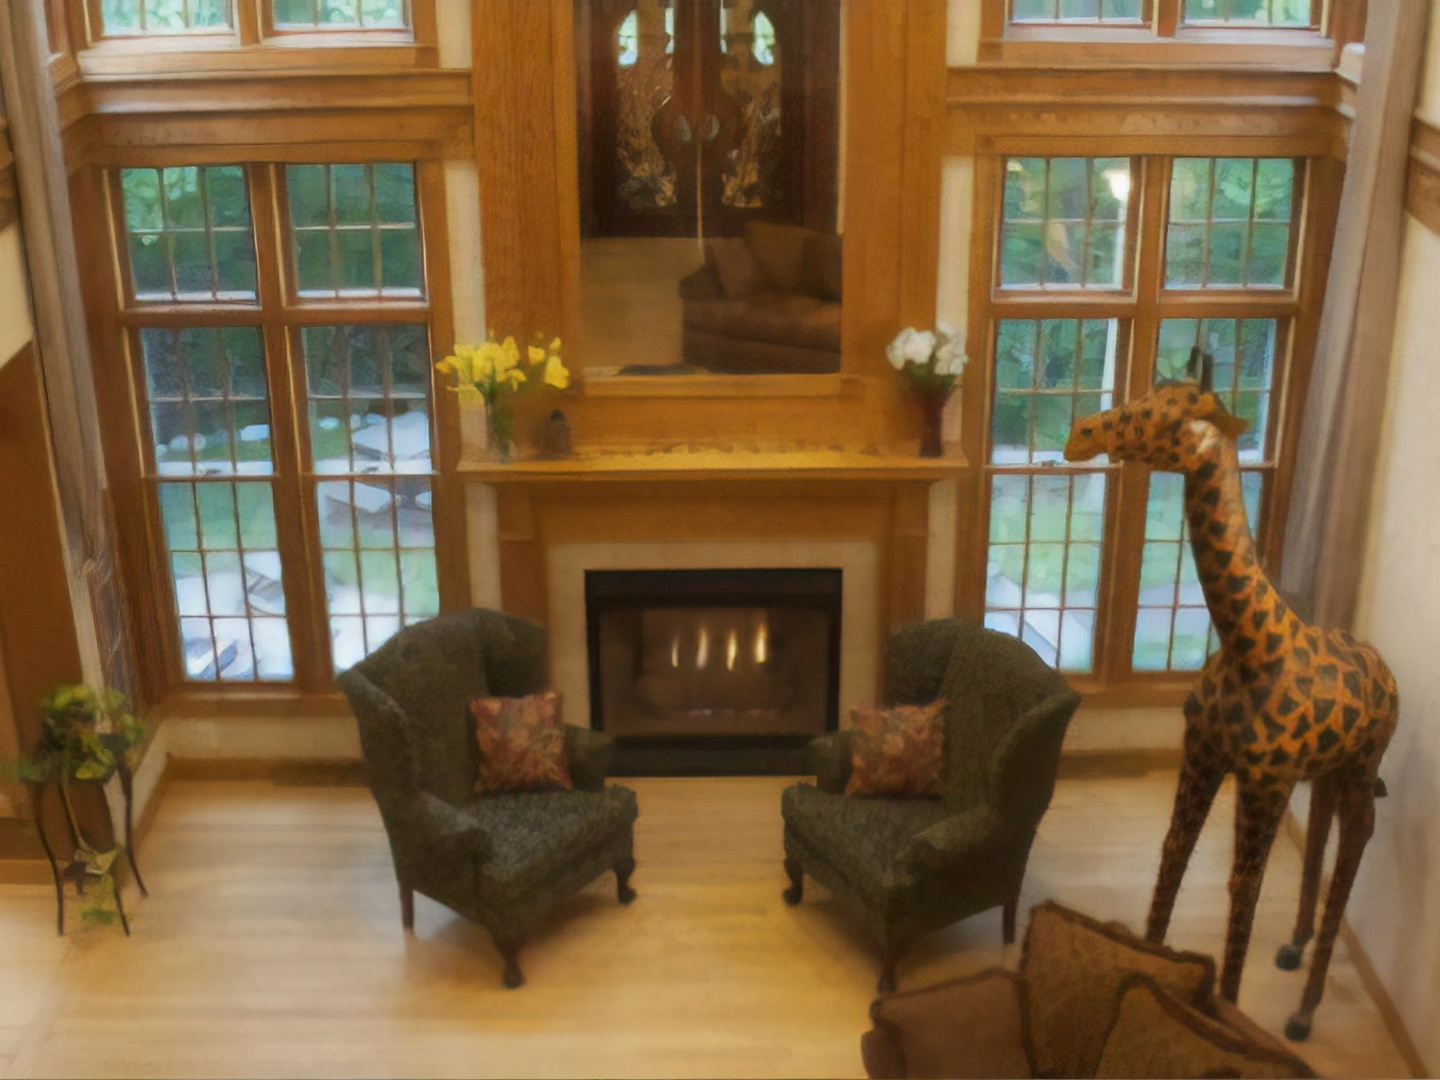 A living room filled with furniture and a fire place at Hidden Serenity Bed & Breakfast.